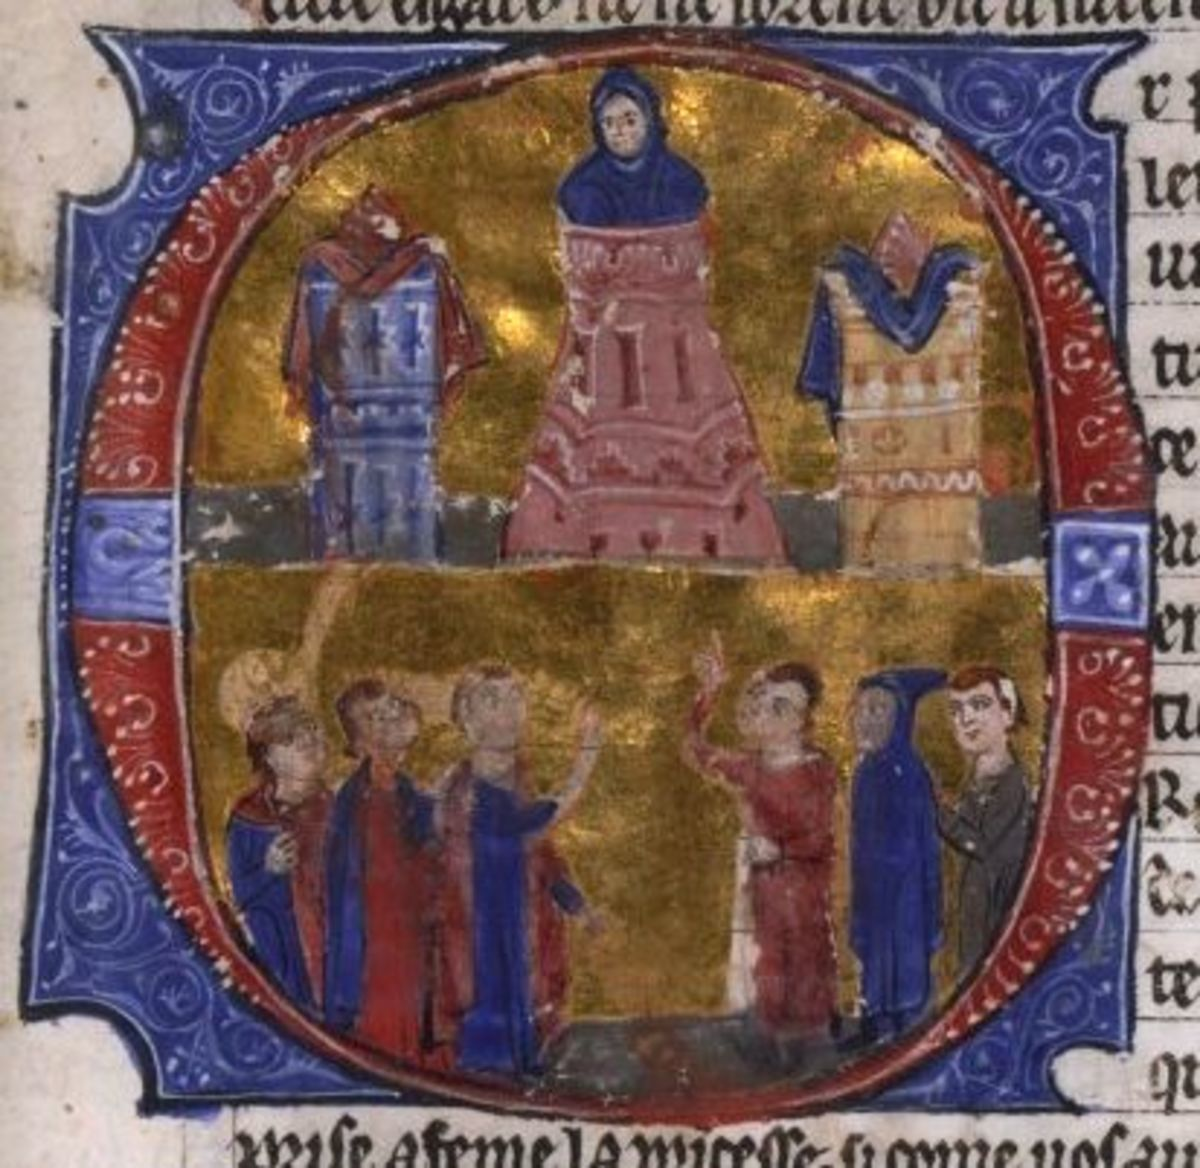 An illustration of Reynald de Chatillon torturing Patriarch Aimery of Antioch dating from the 13th century.